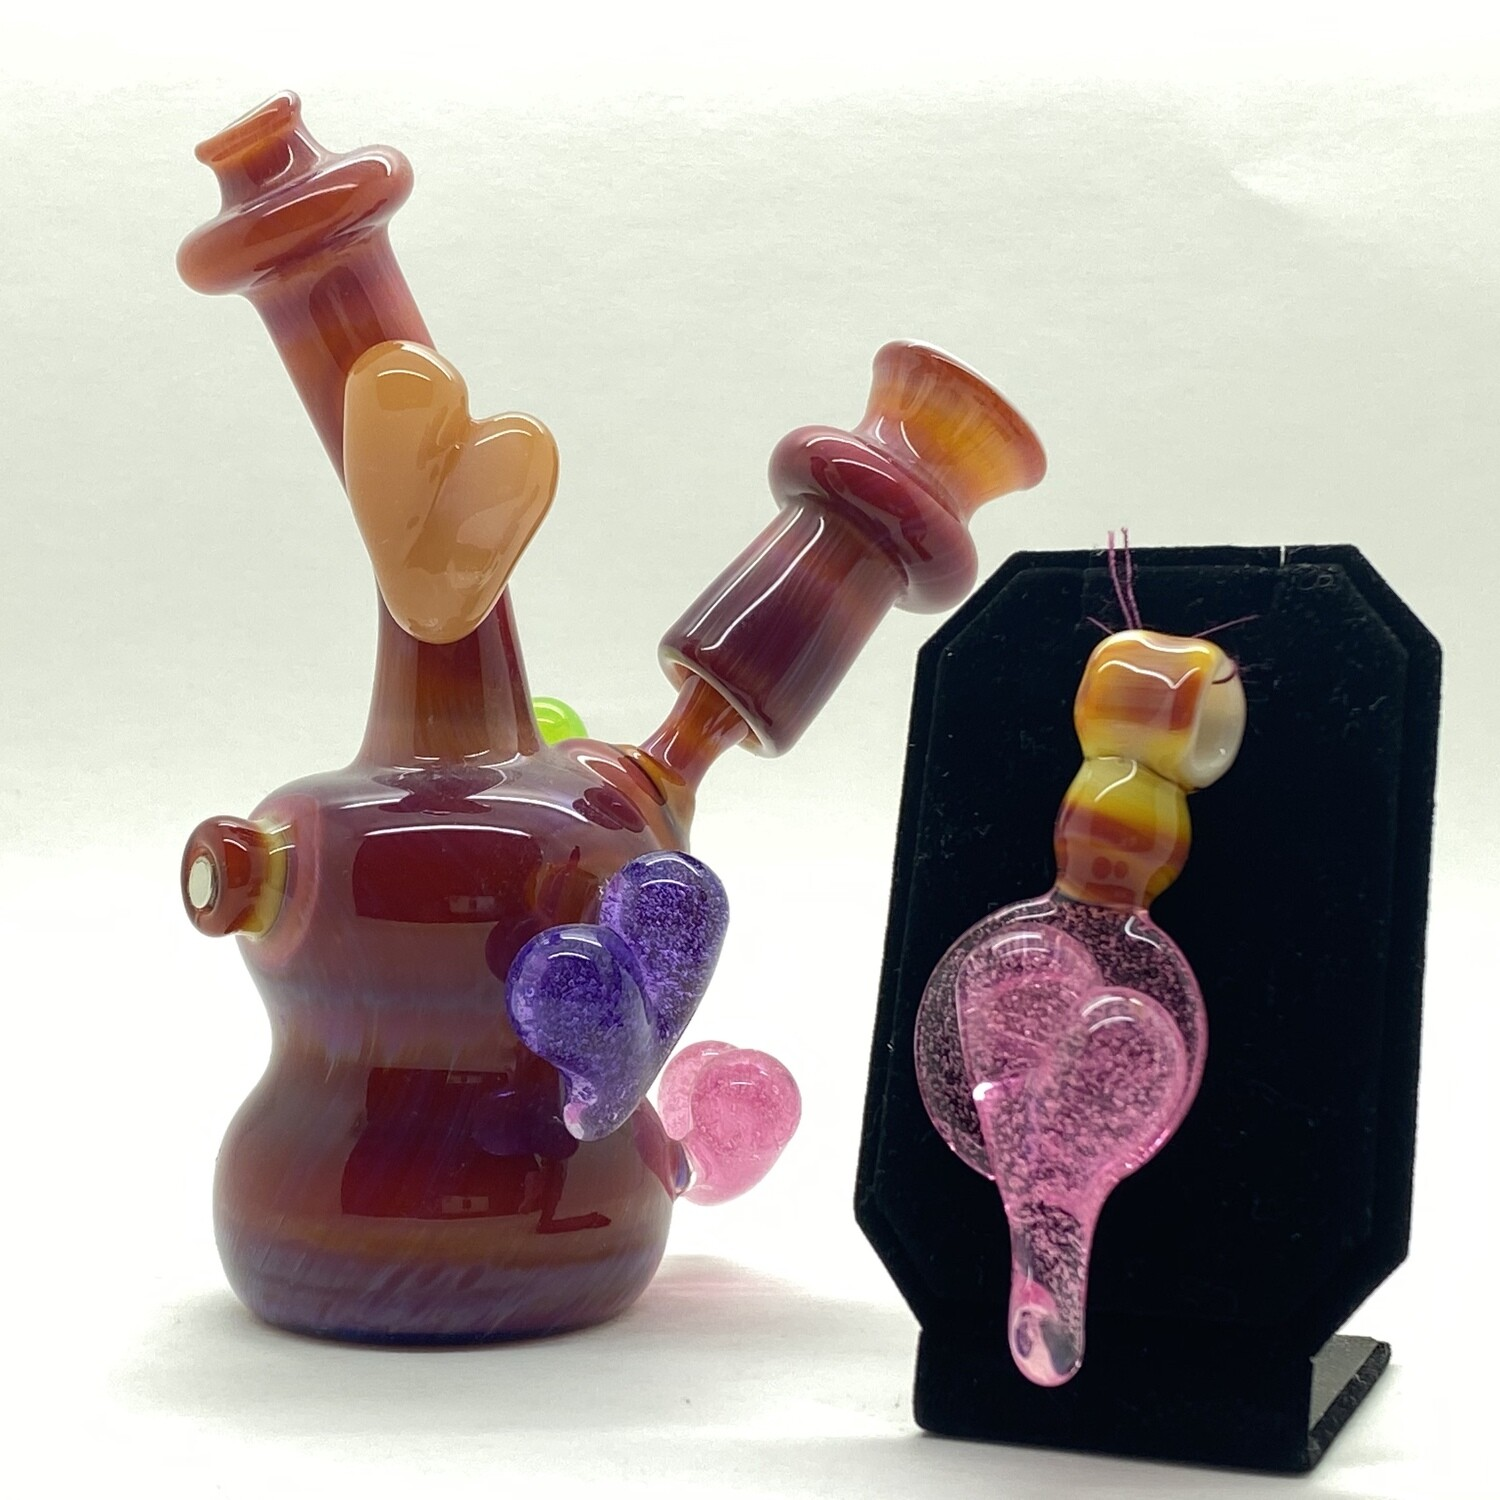 Josh Bailey Heart Rig with Heart Pendent/Dabber